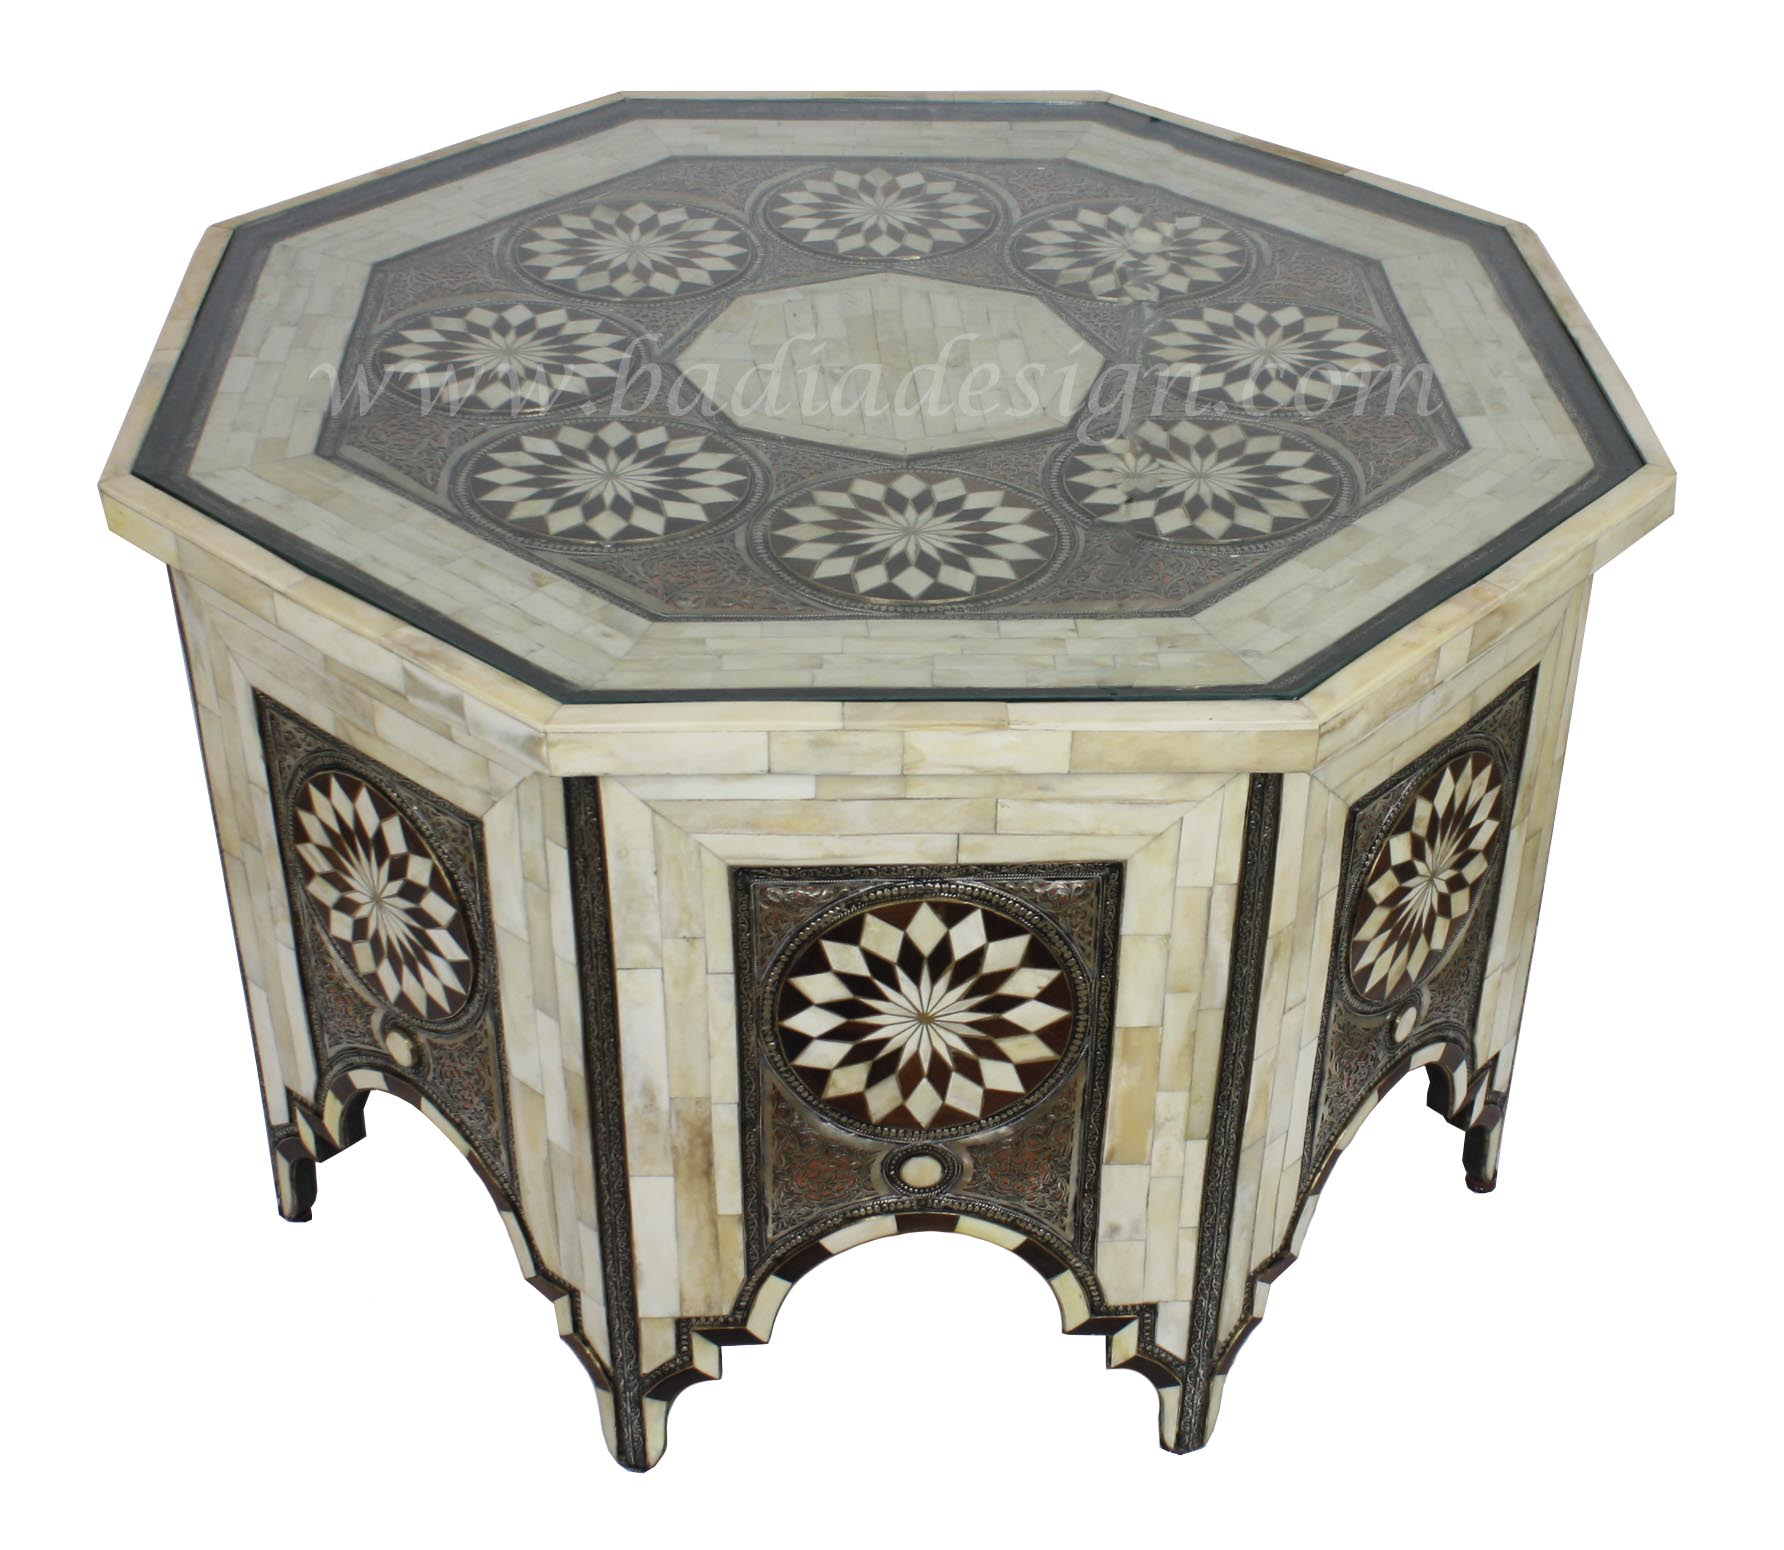 moroccan-white-metal-and-bone-coffee-table-mb-st070-1.jpg